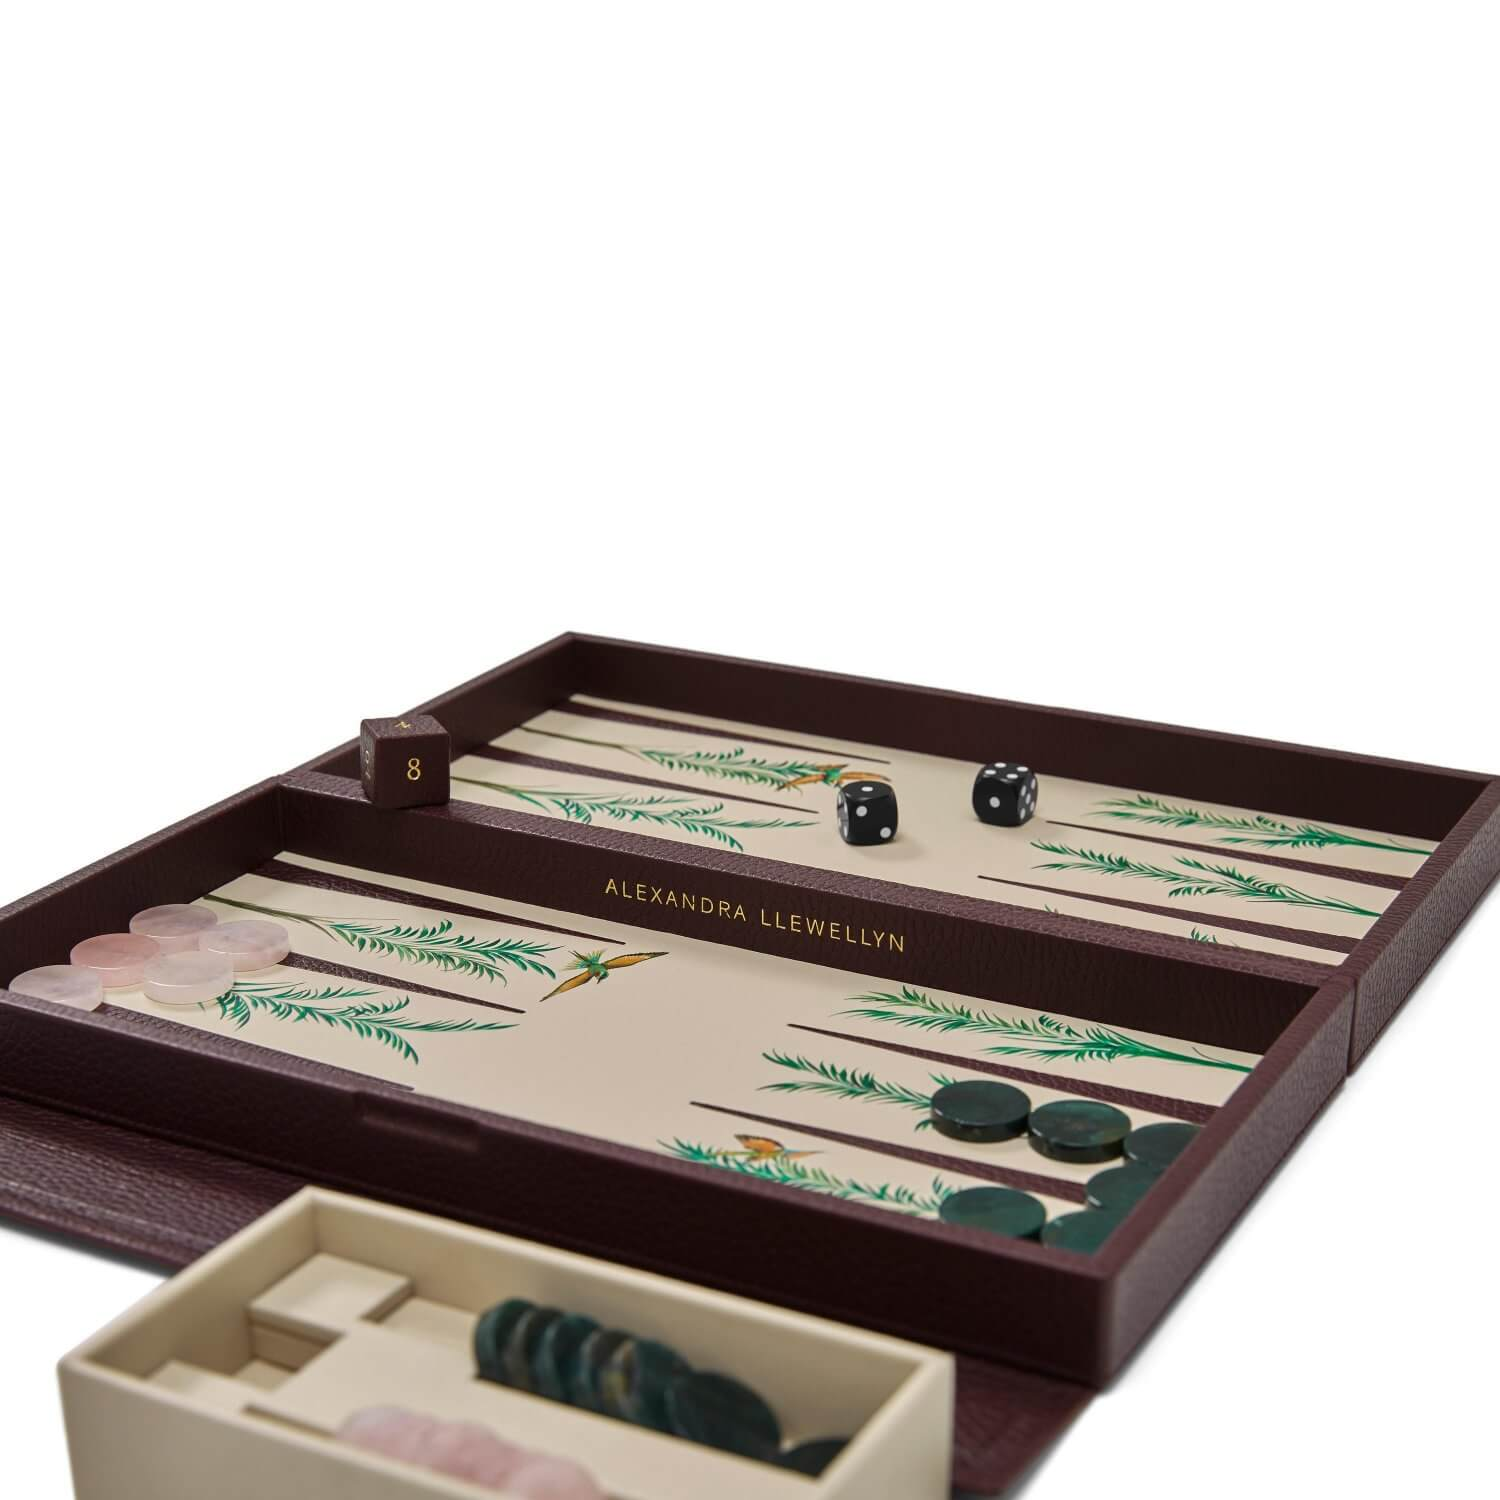 Palm leather travel backgammon board with rose quartz and green agate playing pieces